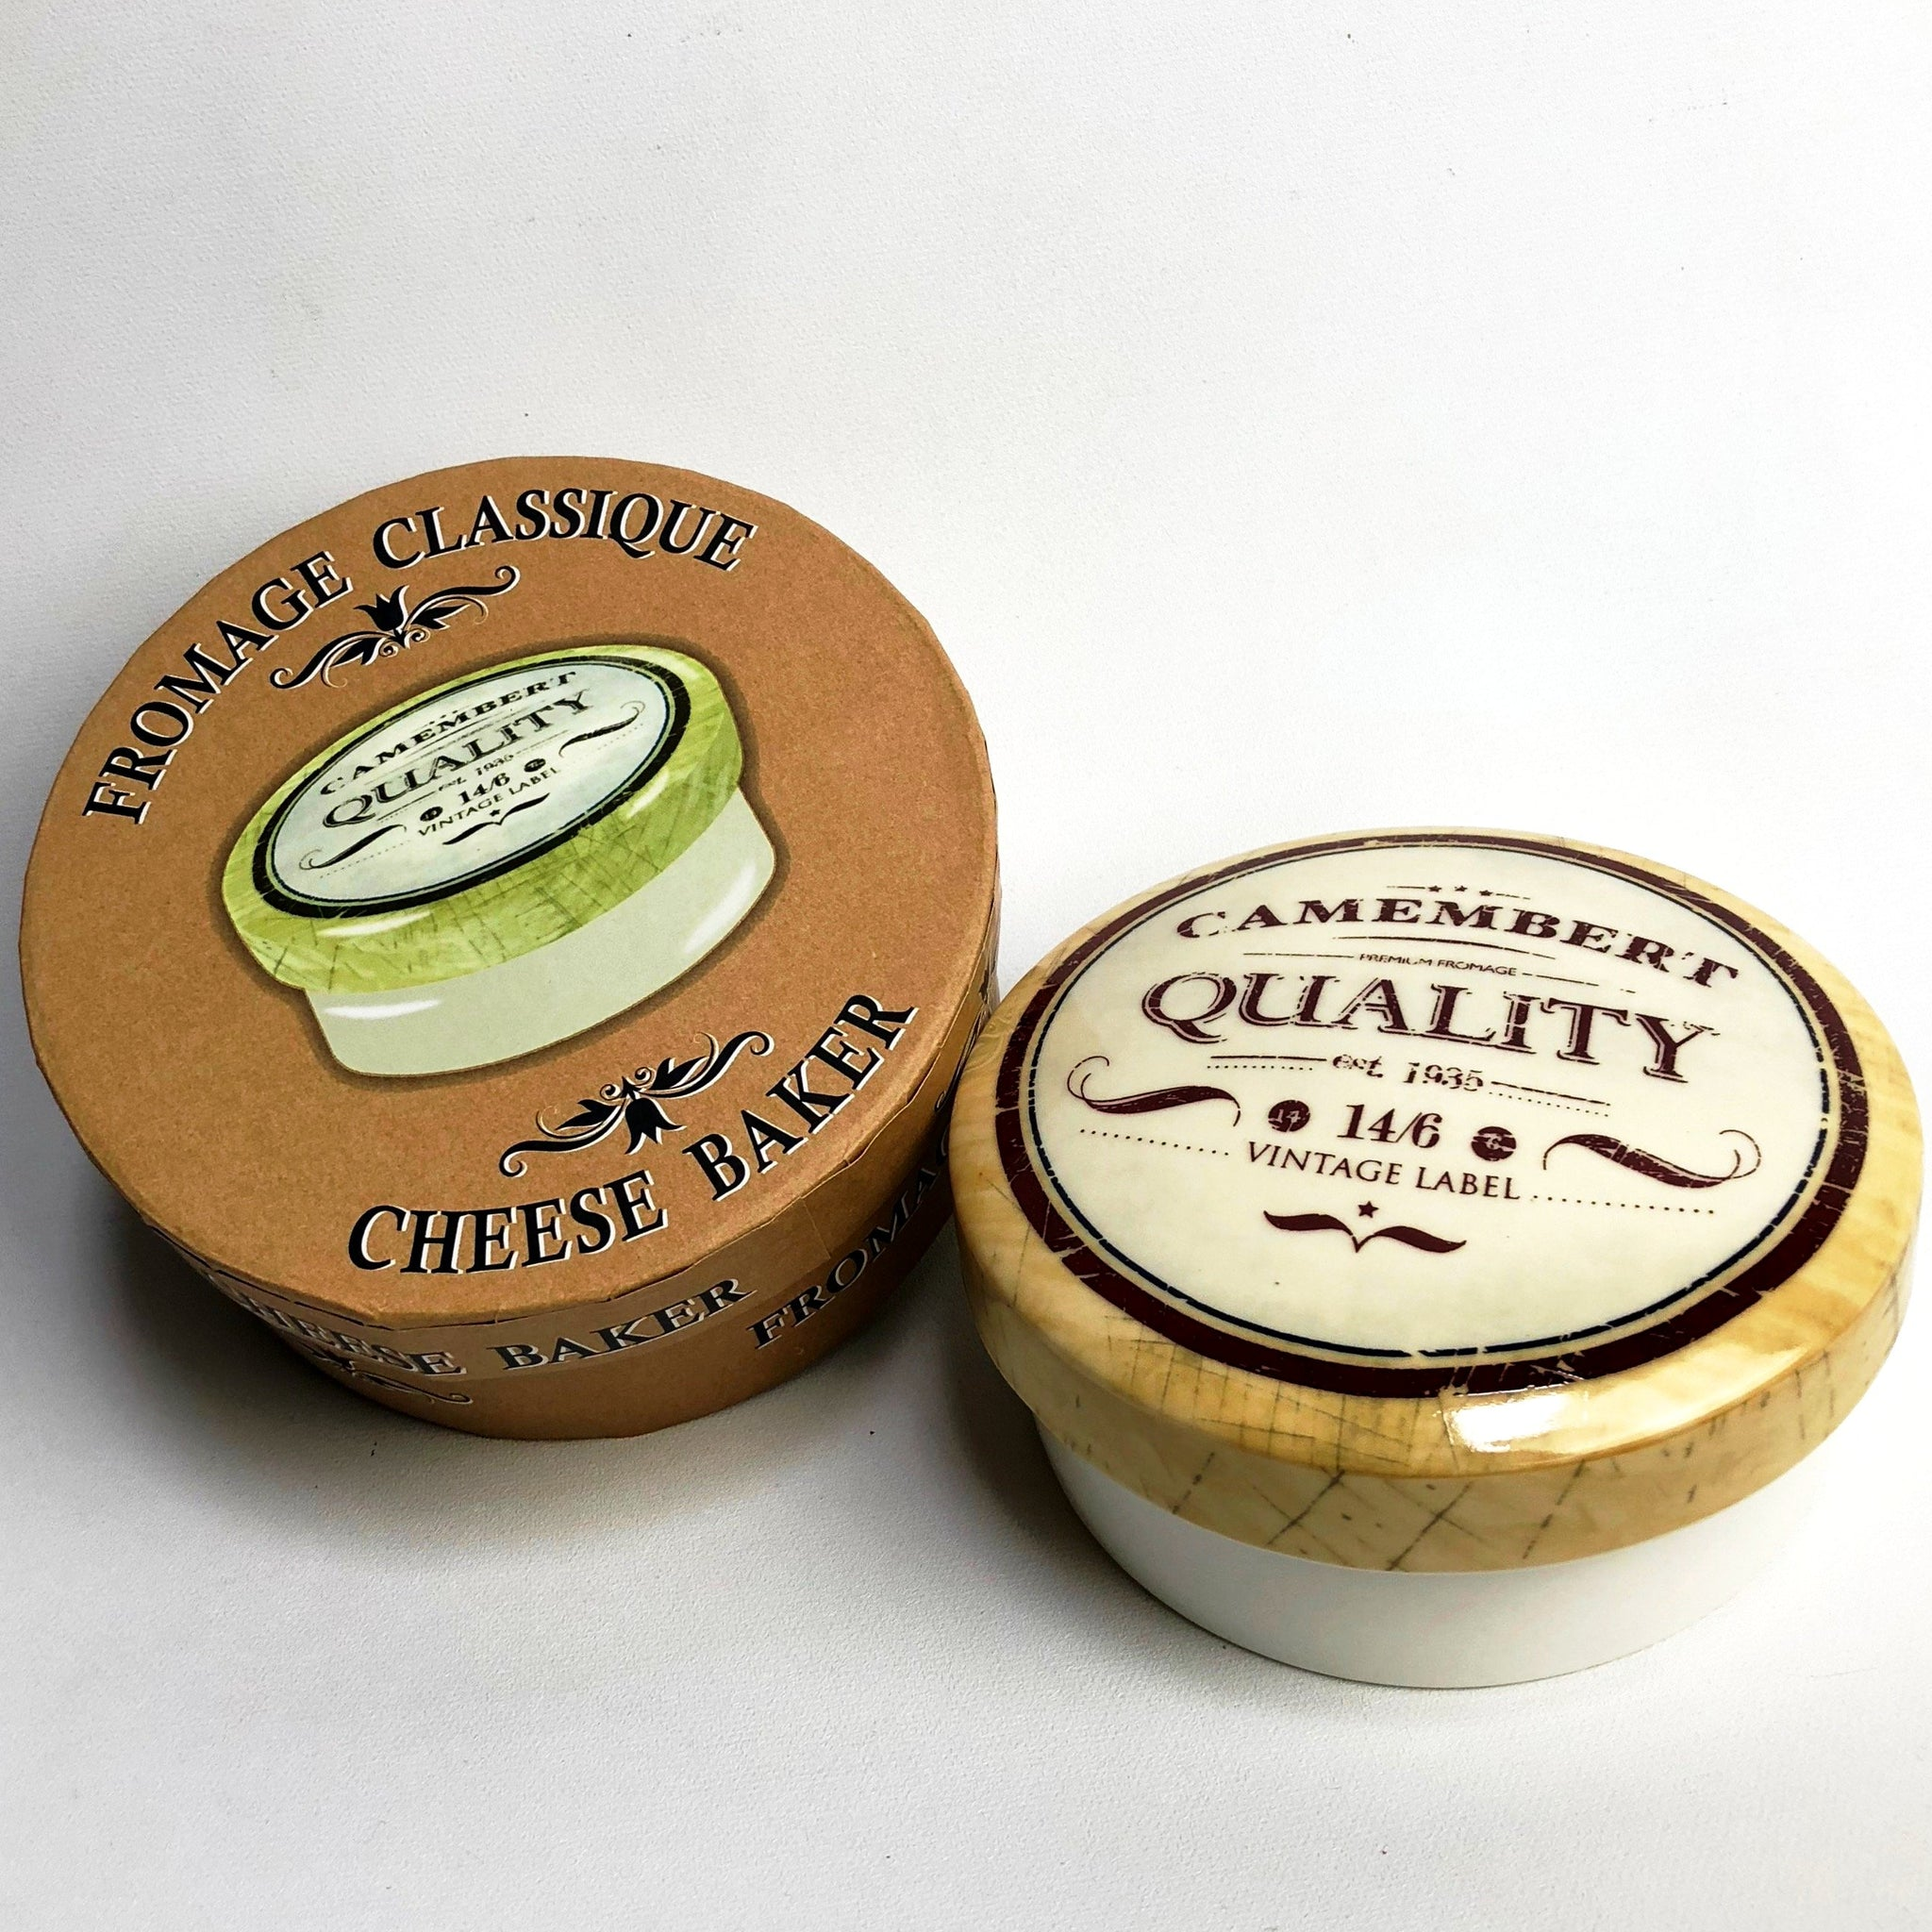 CHEESE BAKER FROMAGE CLASSIQUE ROQUEFORT